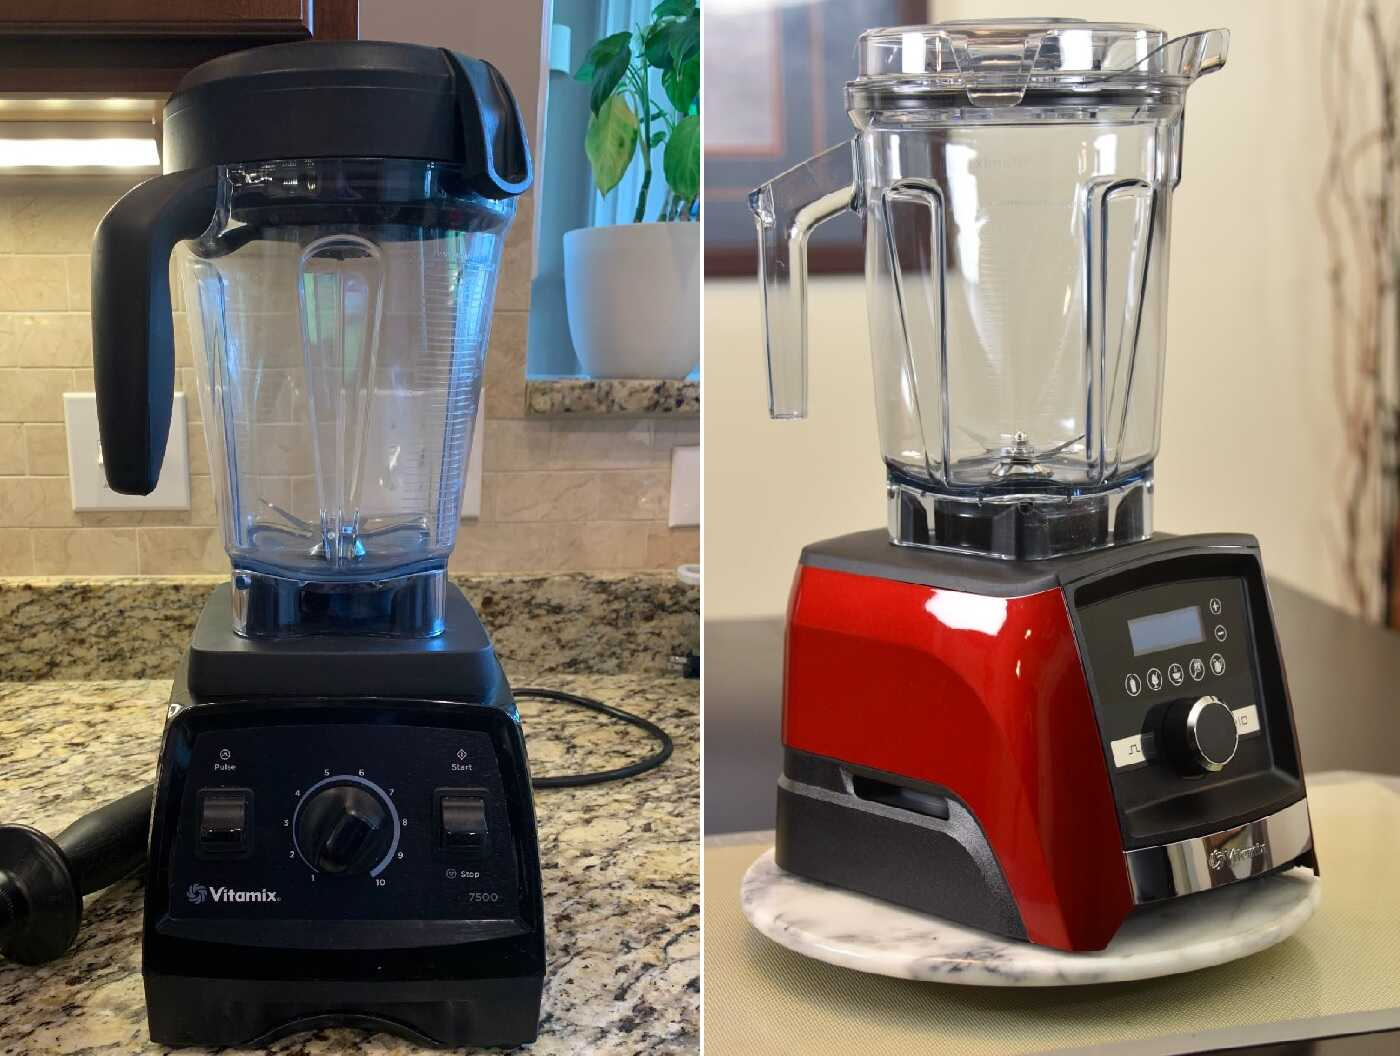 Vitamix 7500 Vs A3500